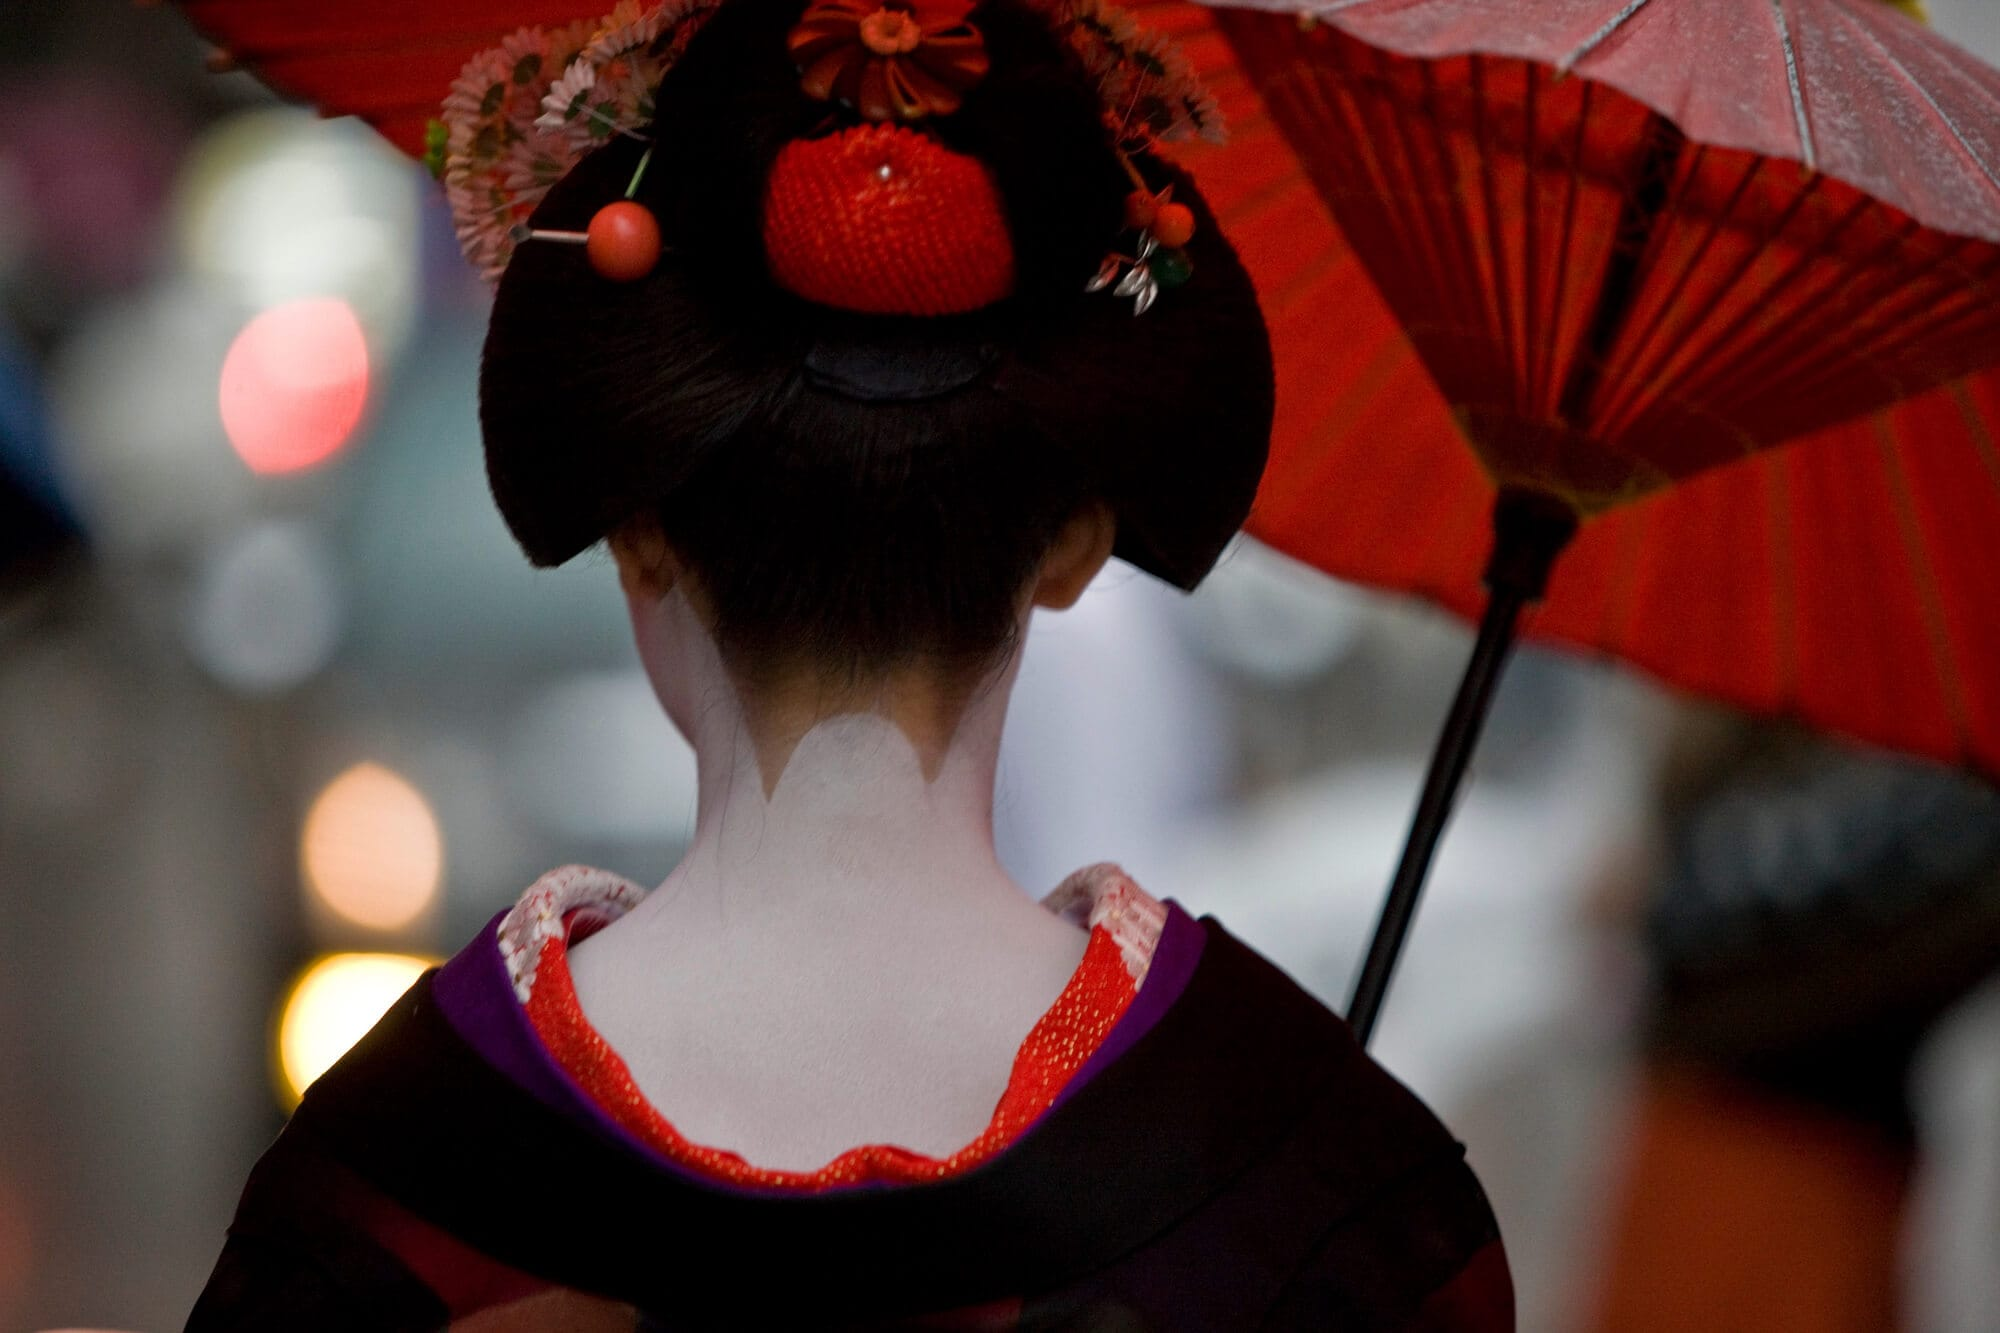 Travel bloggers reveal their most unforgettable travel experience ever - An incredible geisha experience in Japan